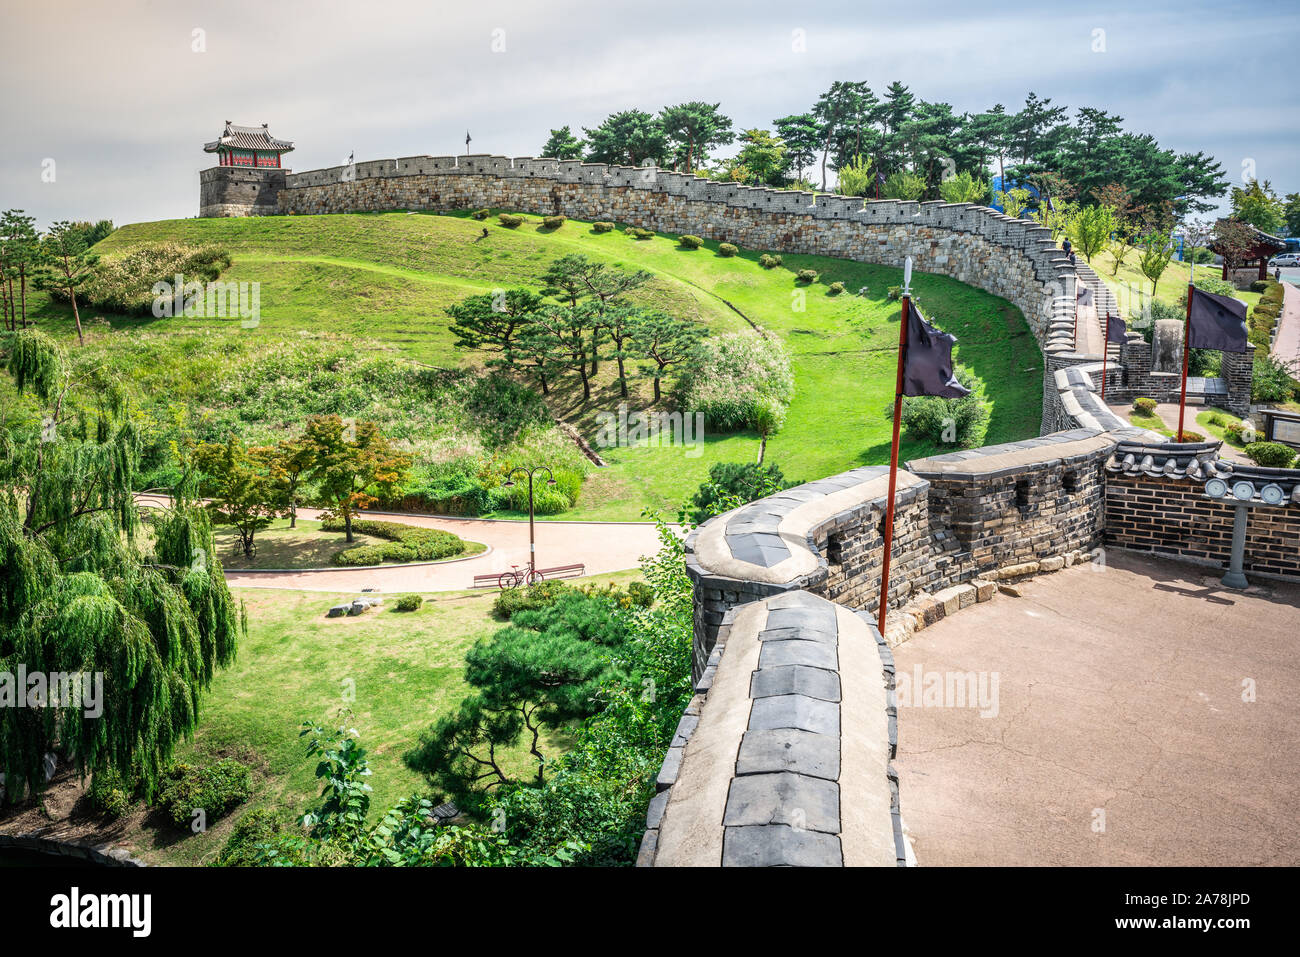 Suwon Hwaseong fortress view with fortification wall and small tower in Suwon South Korea Stock Photo